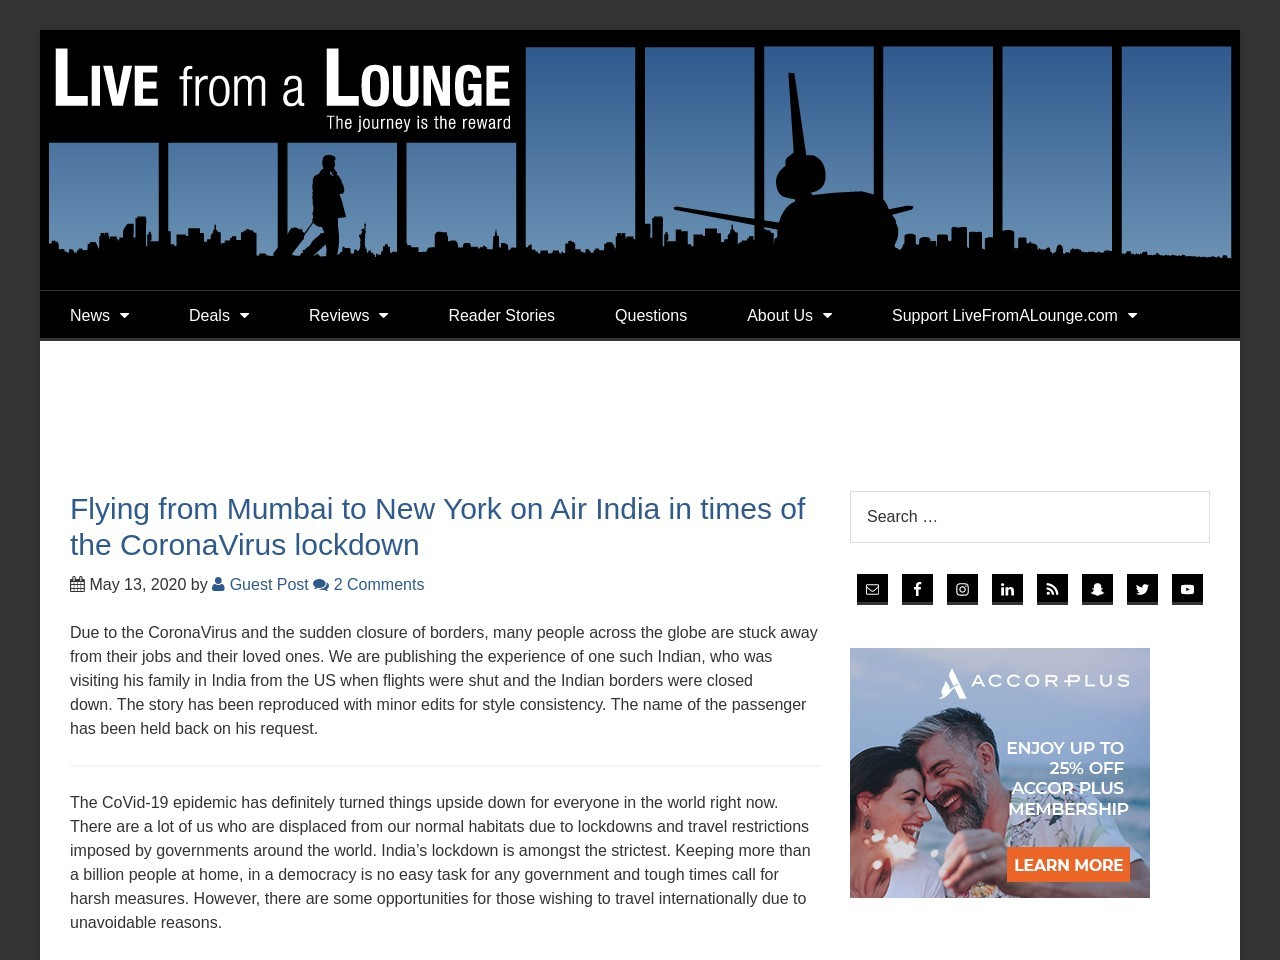 Flying from Mumbai to New York on Air India in times of the CoronaVirus lockdown